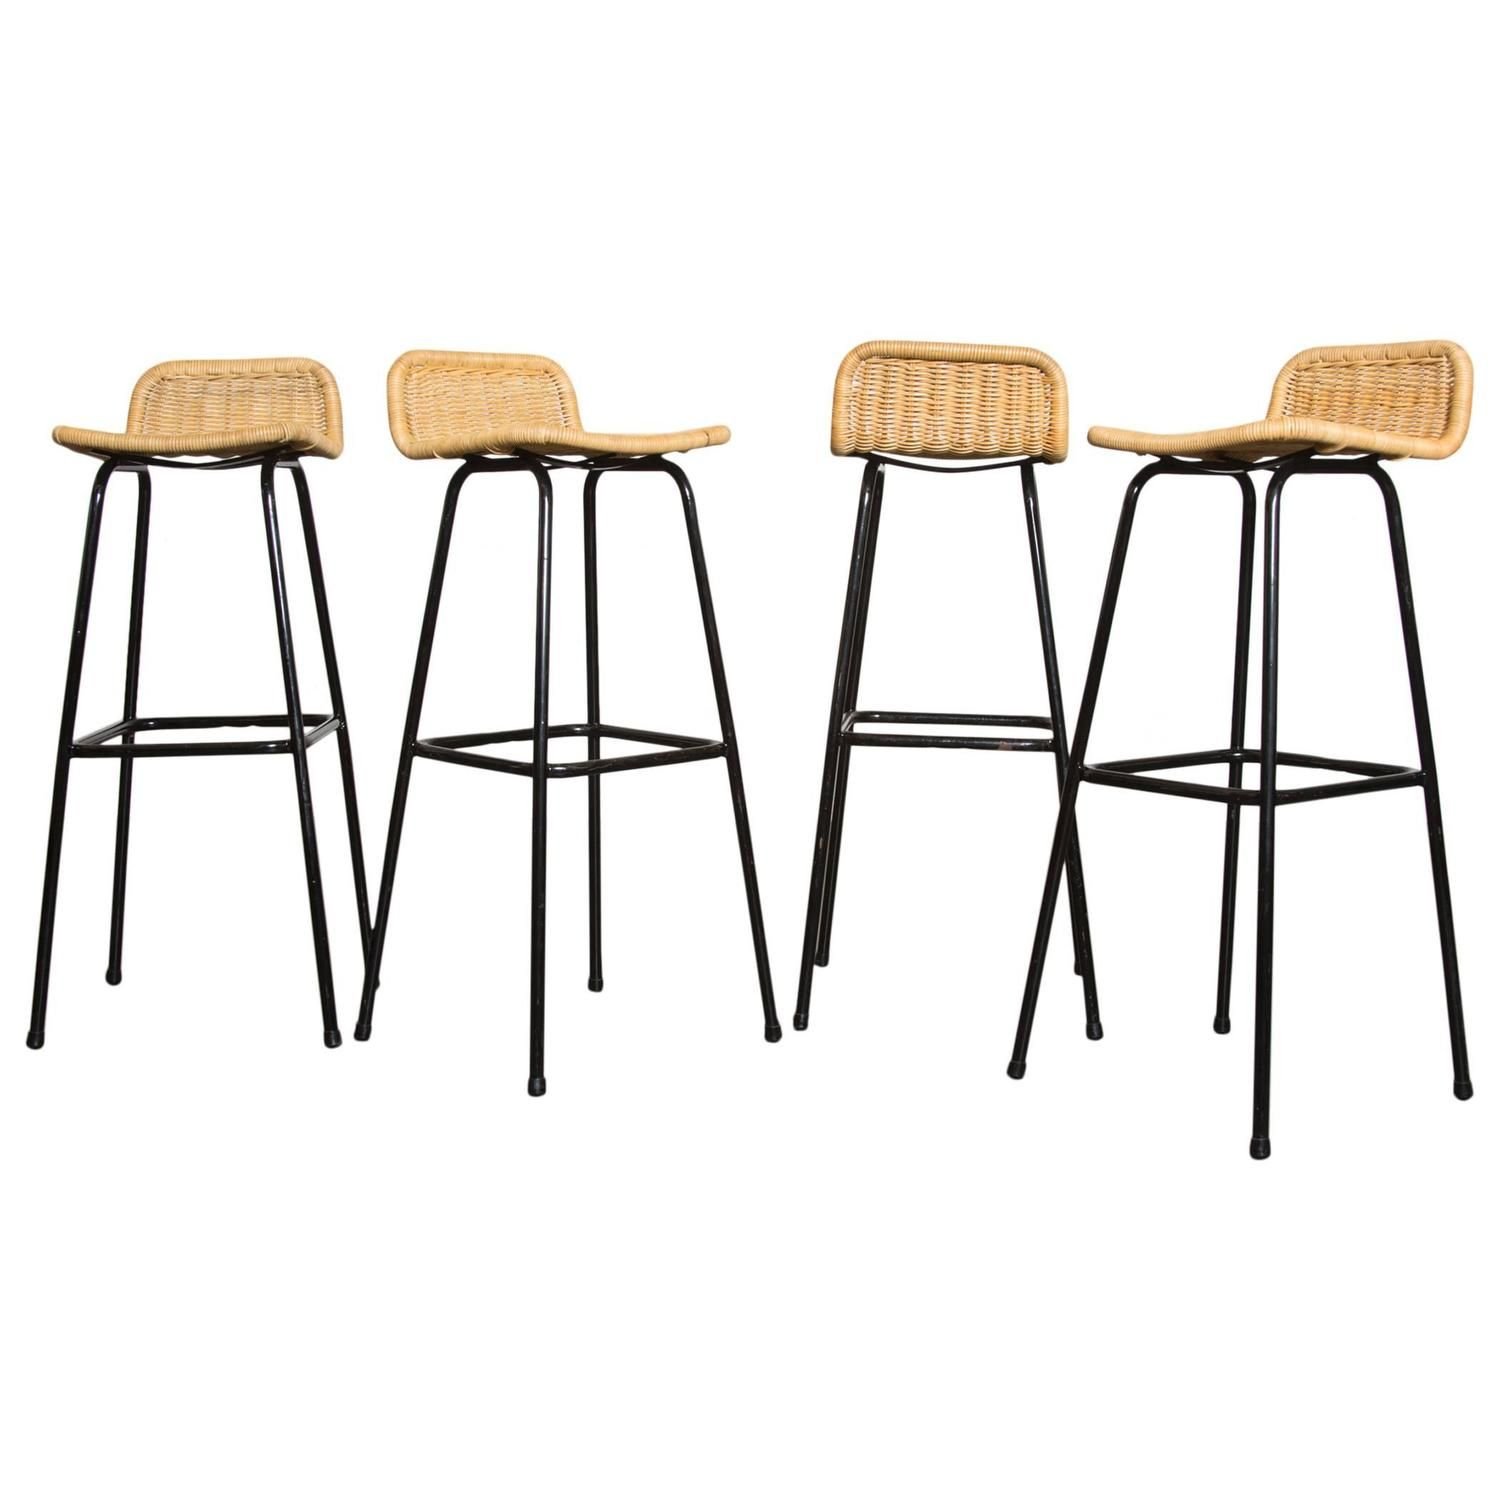 Set of Four Charlotte Perriand Style Bar Stools | Pinterest